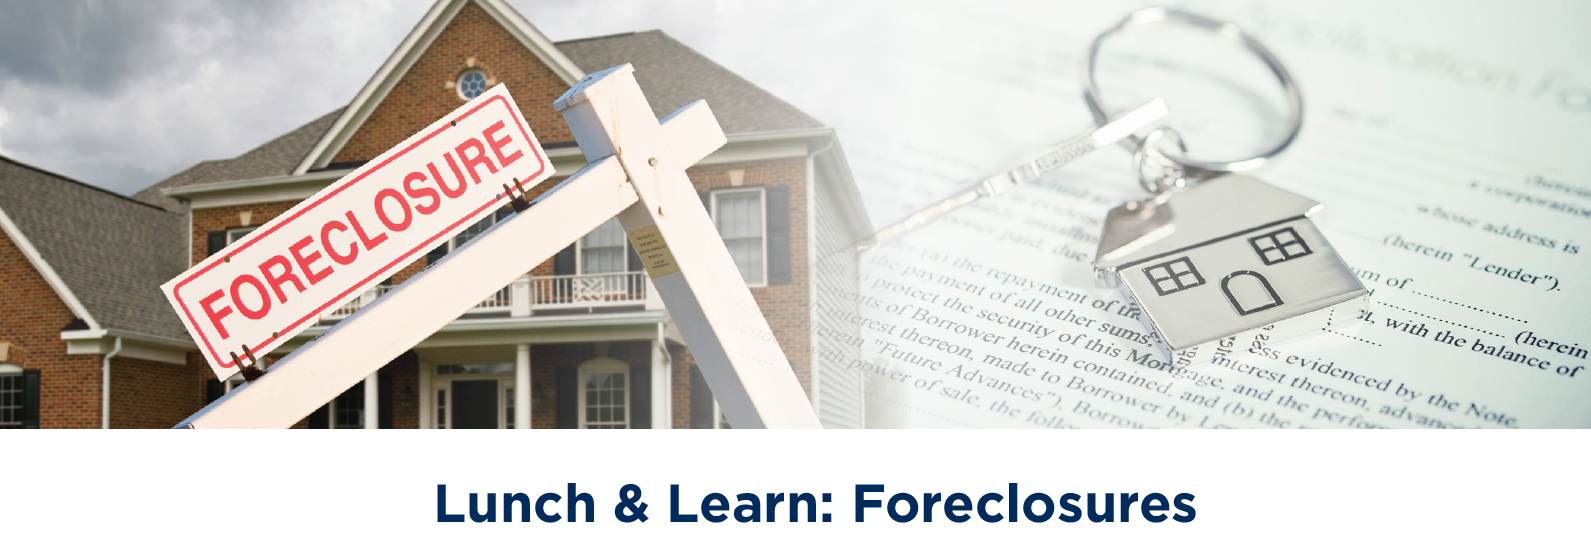 Lunch & Learn: Foreclosures